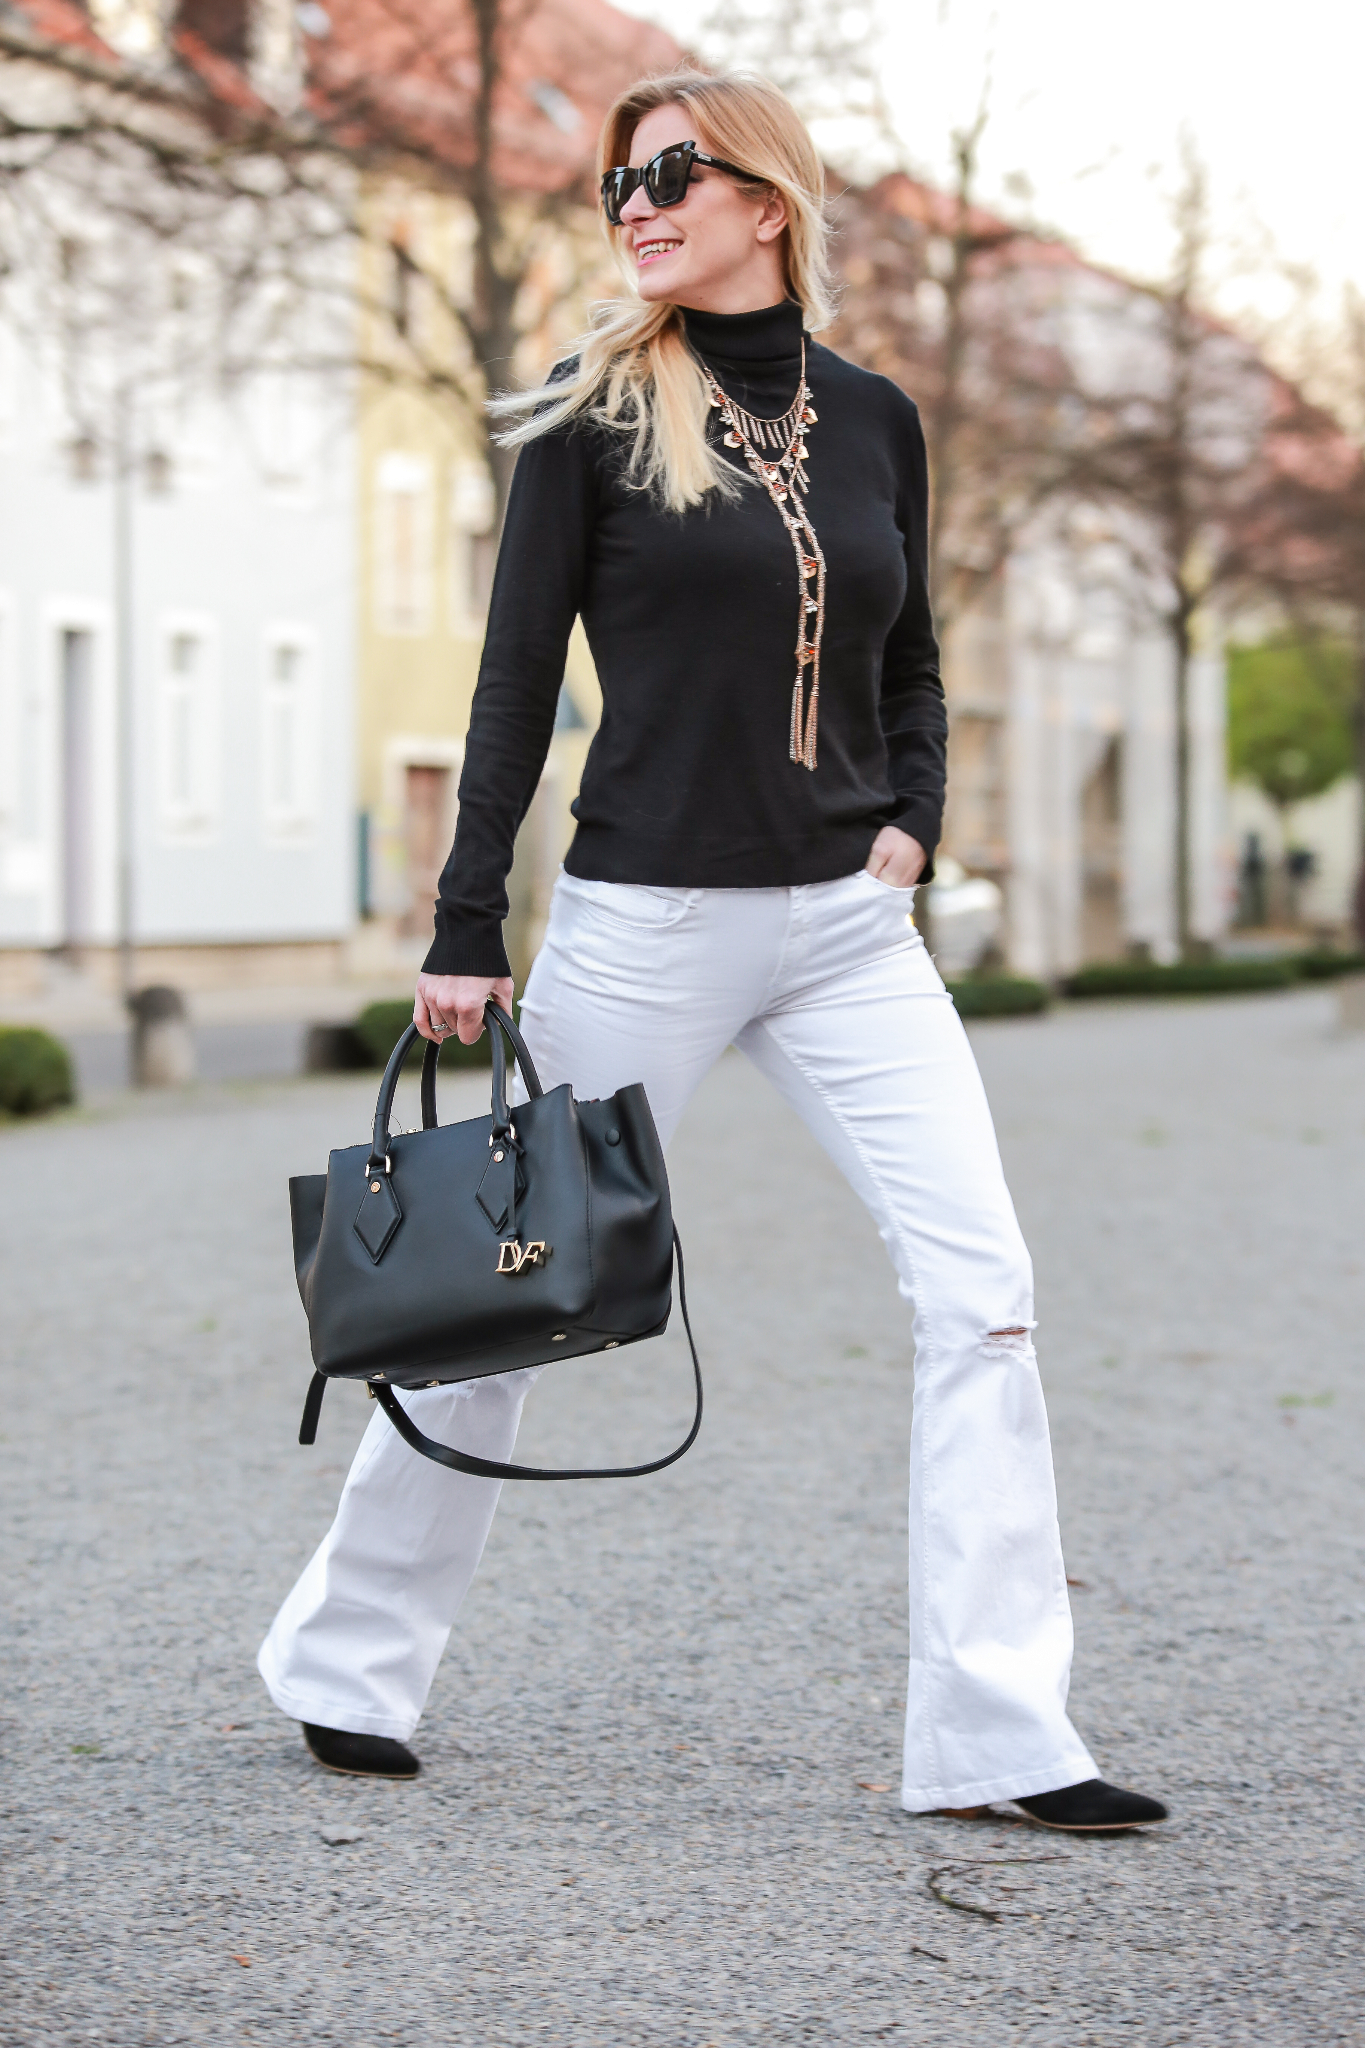 Fashion_Outfit_70`_x_DvF-26